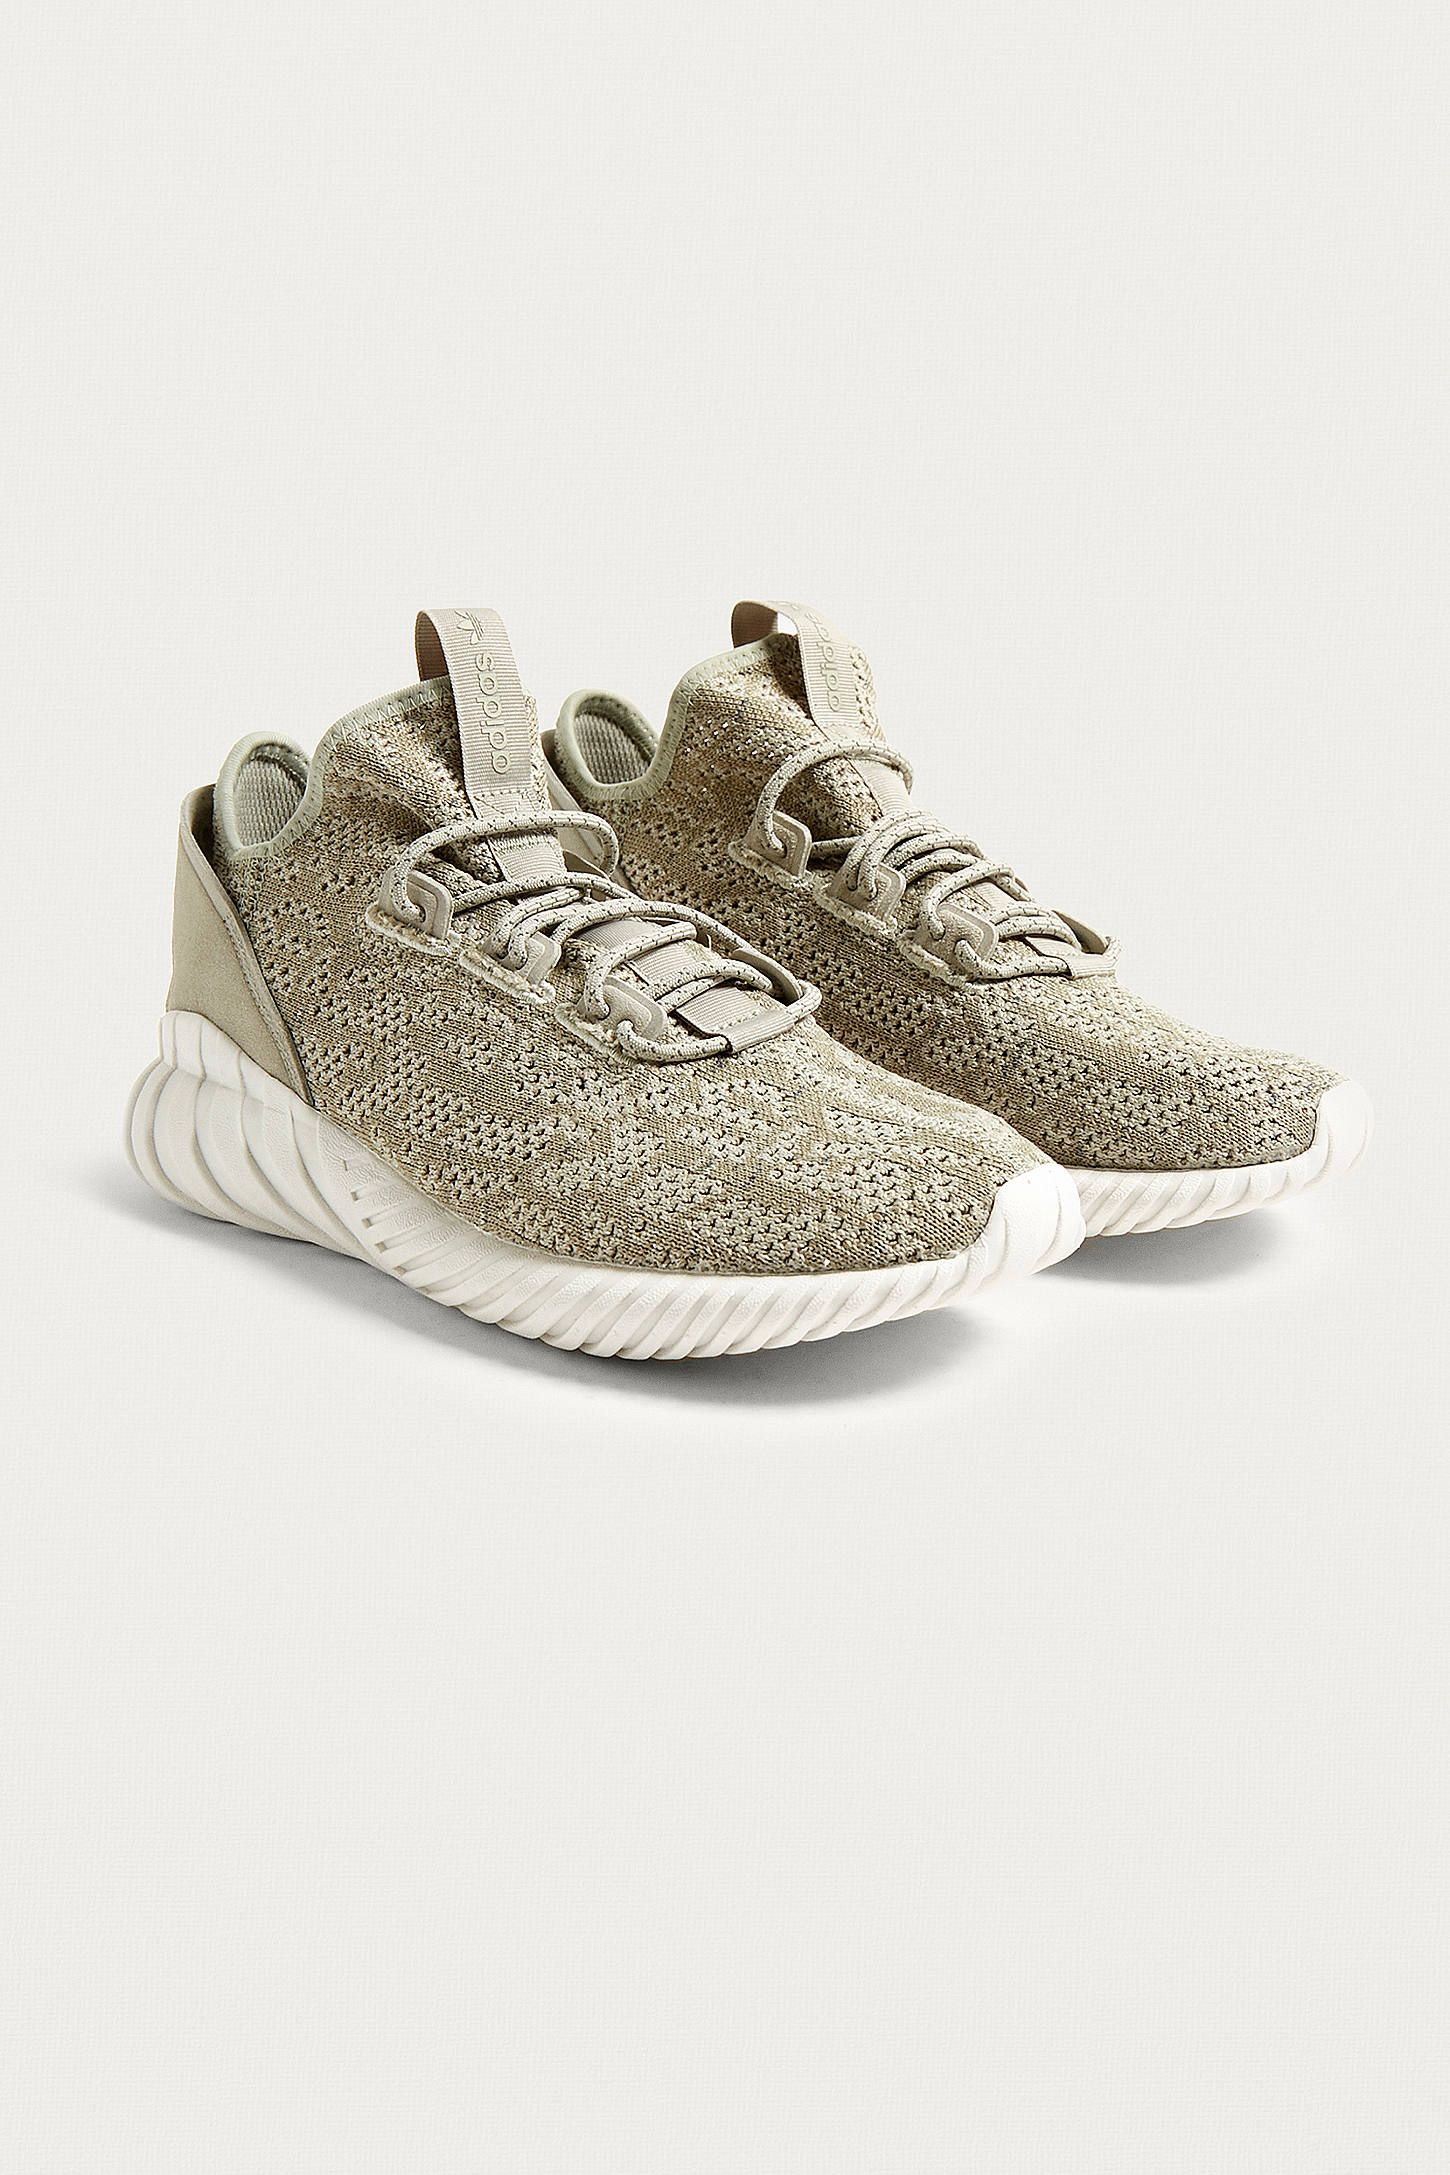 028f1133edd ... sweden shop adidas tubular doom sand trainers at urban outfitters  today. we carry all the